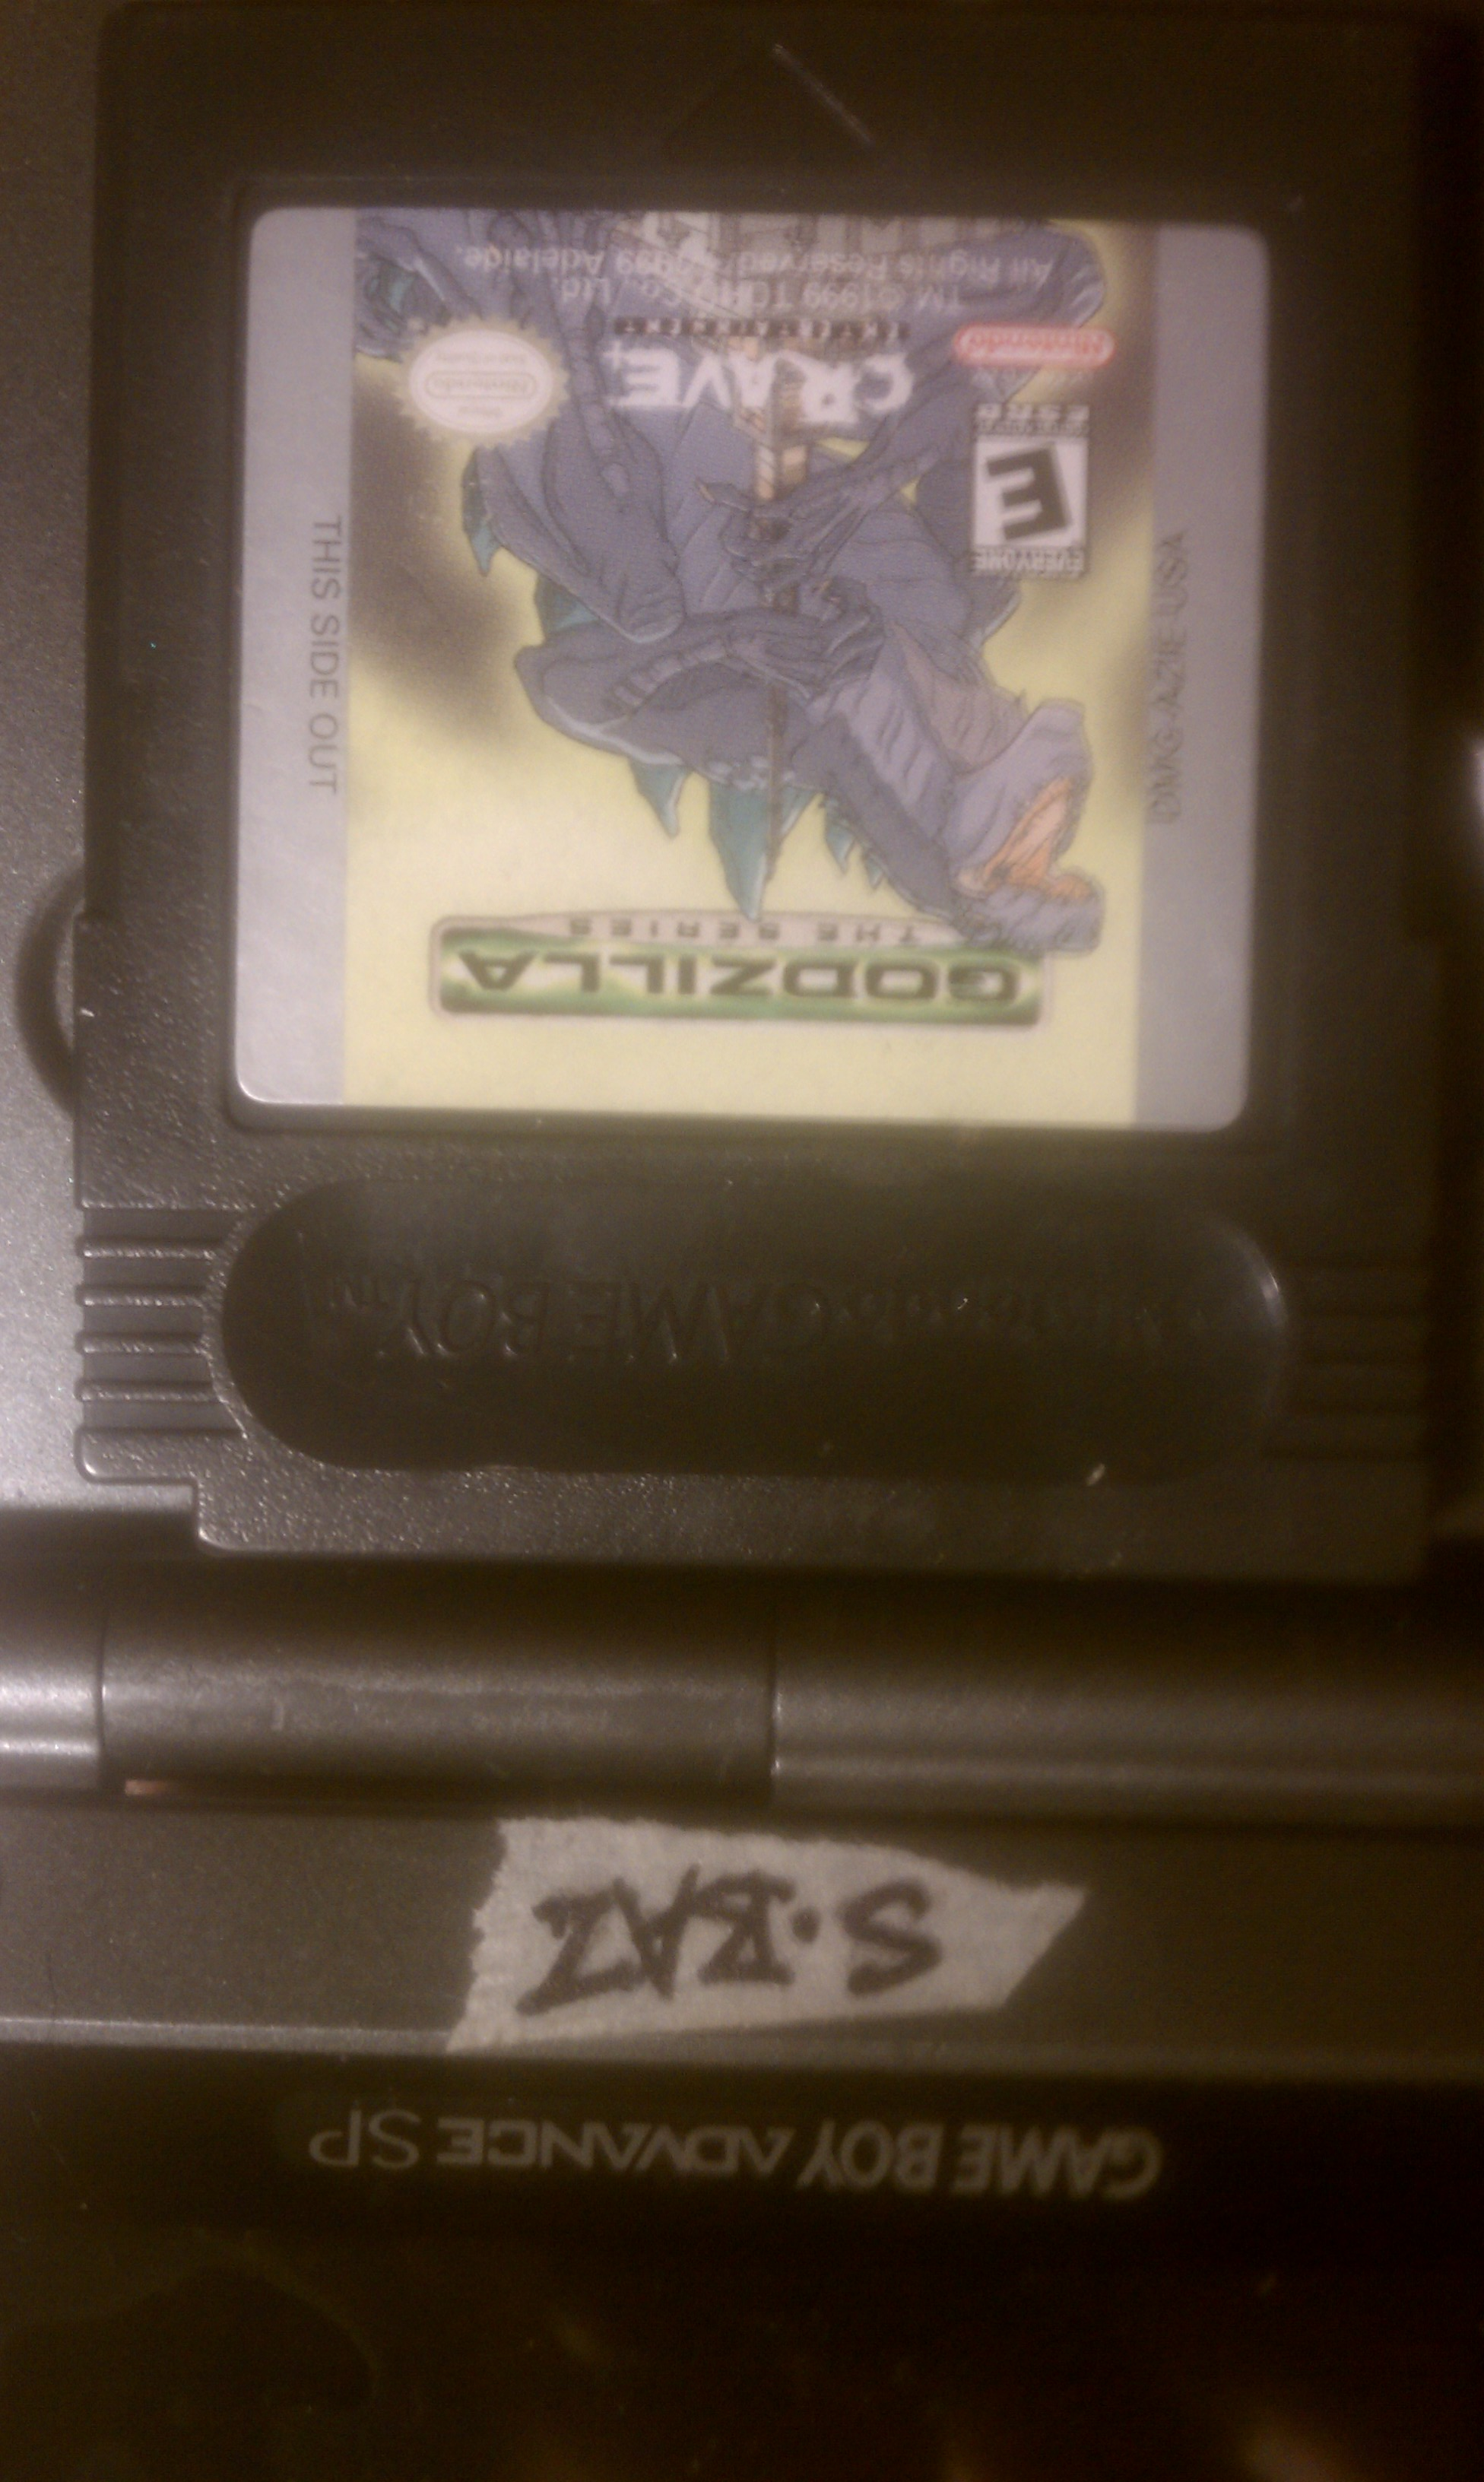 S.BAZ: Godzilla The Series (Game Boy Color) 4,100 points on 2020-07-14 18:52:22